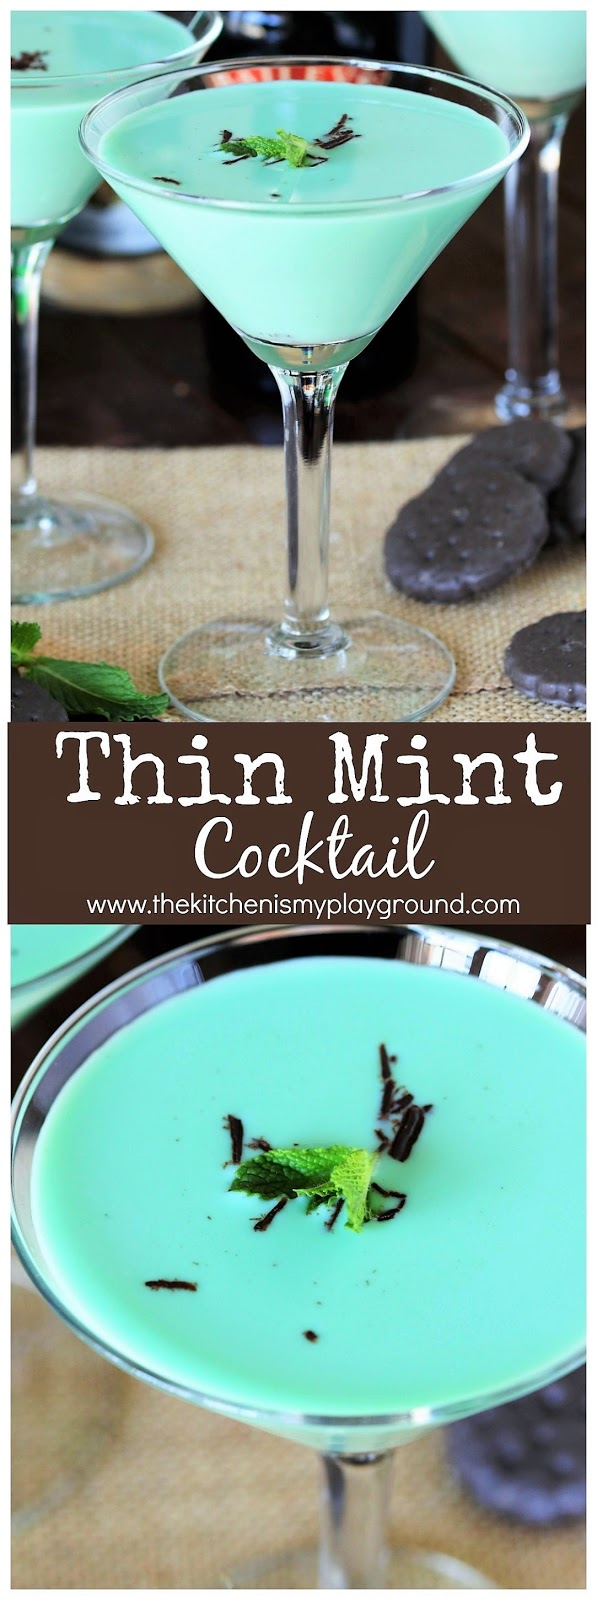 Thin Mint Cocktail - The Kitchen is My Playground